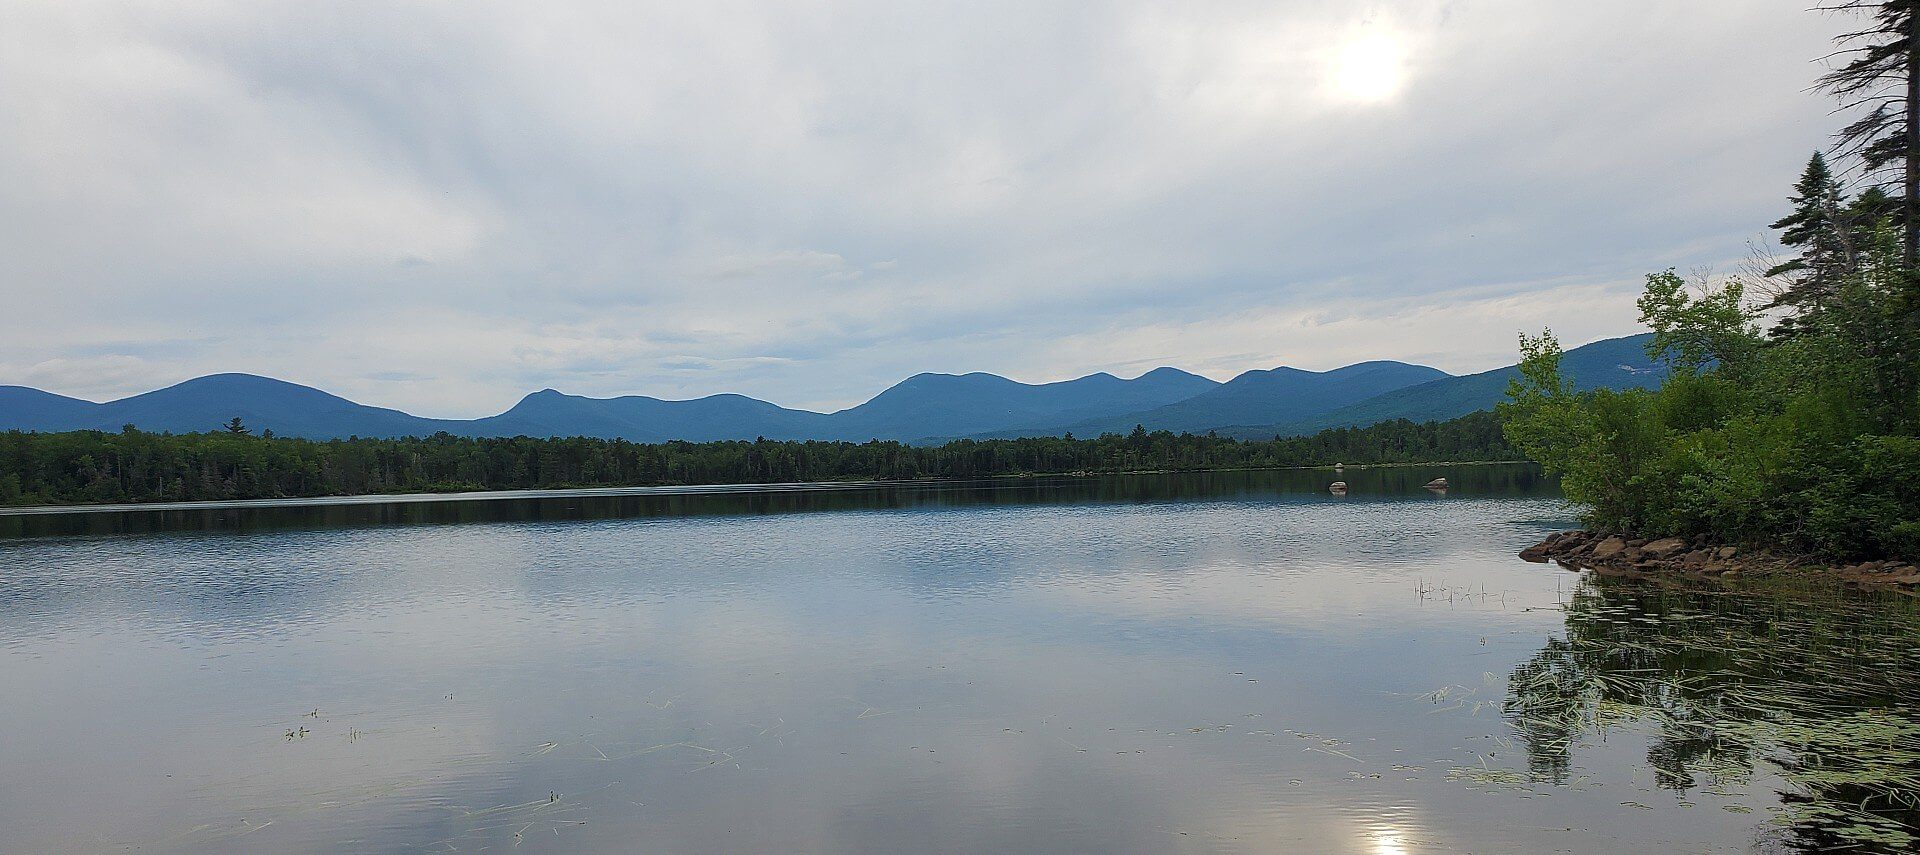 Large calm lake surrounded by trees with a mountain range in the background